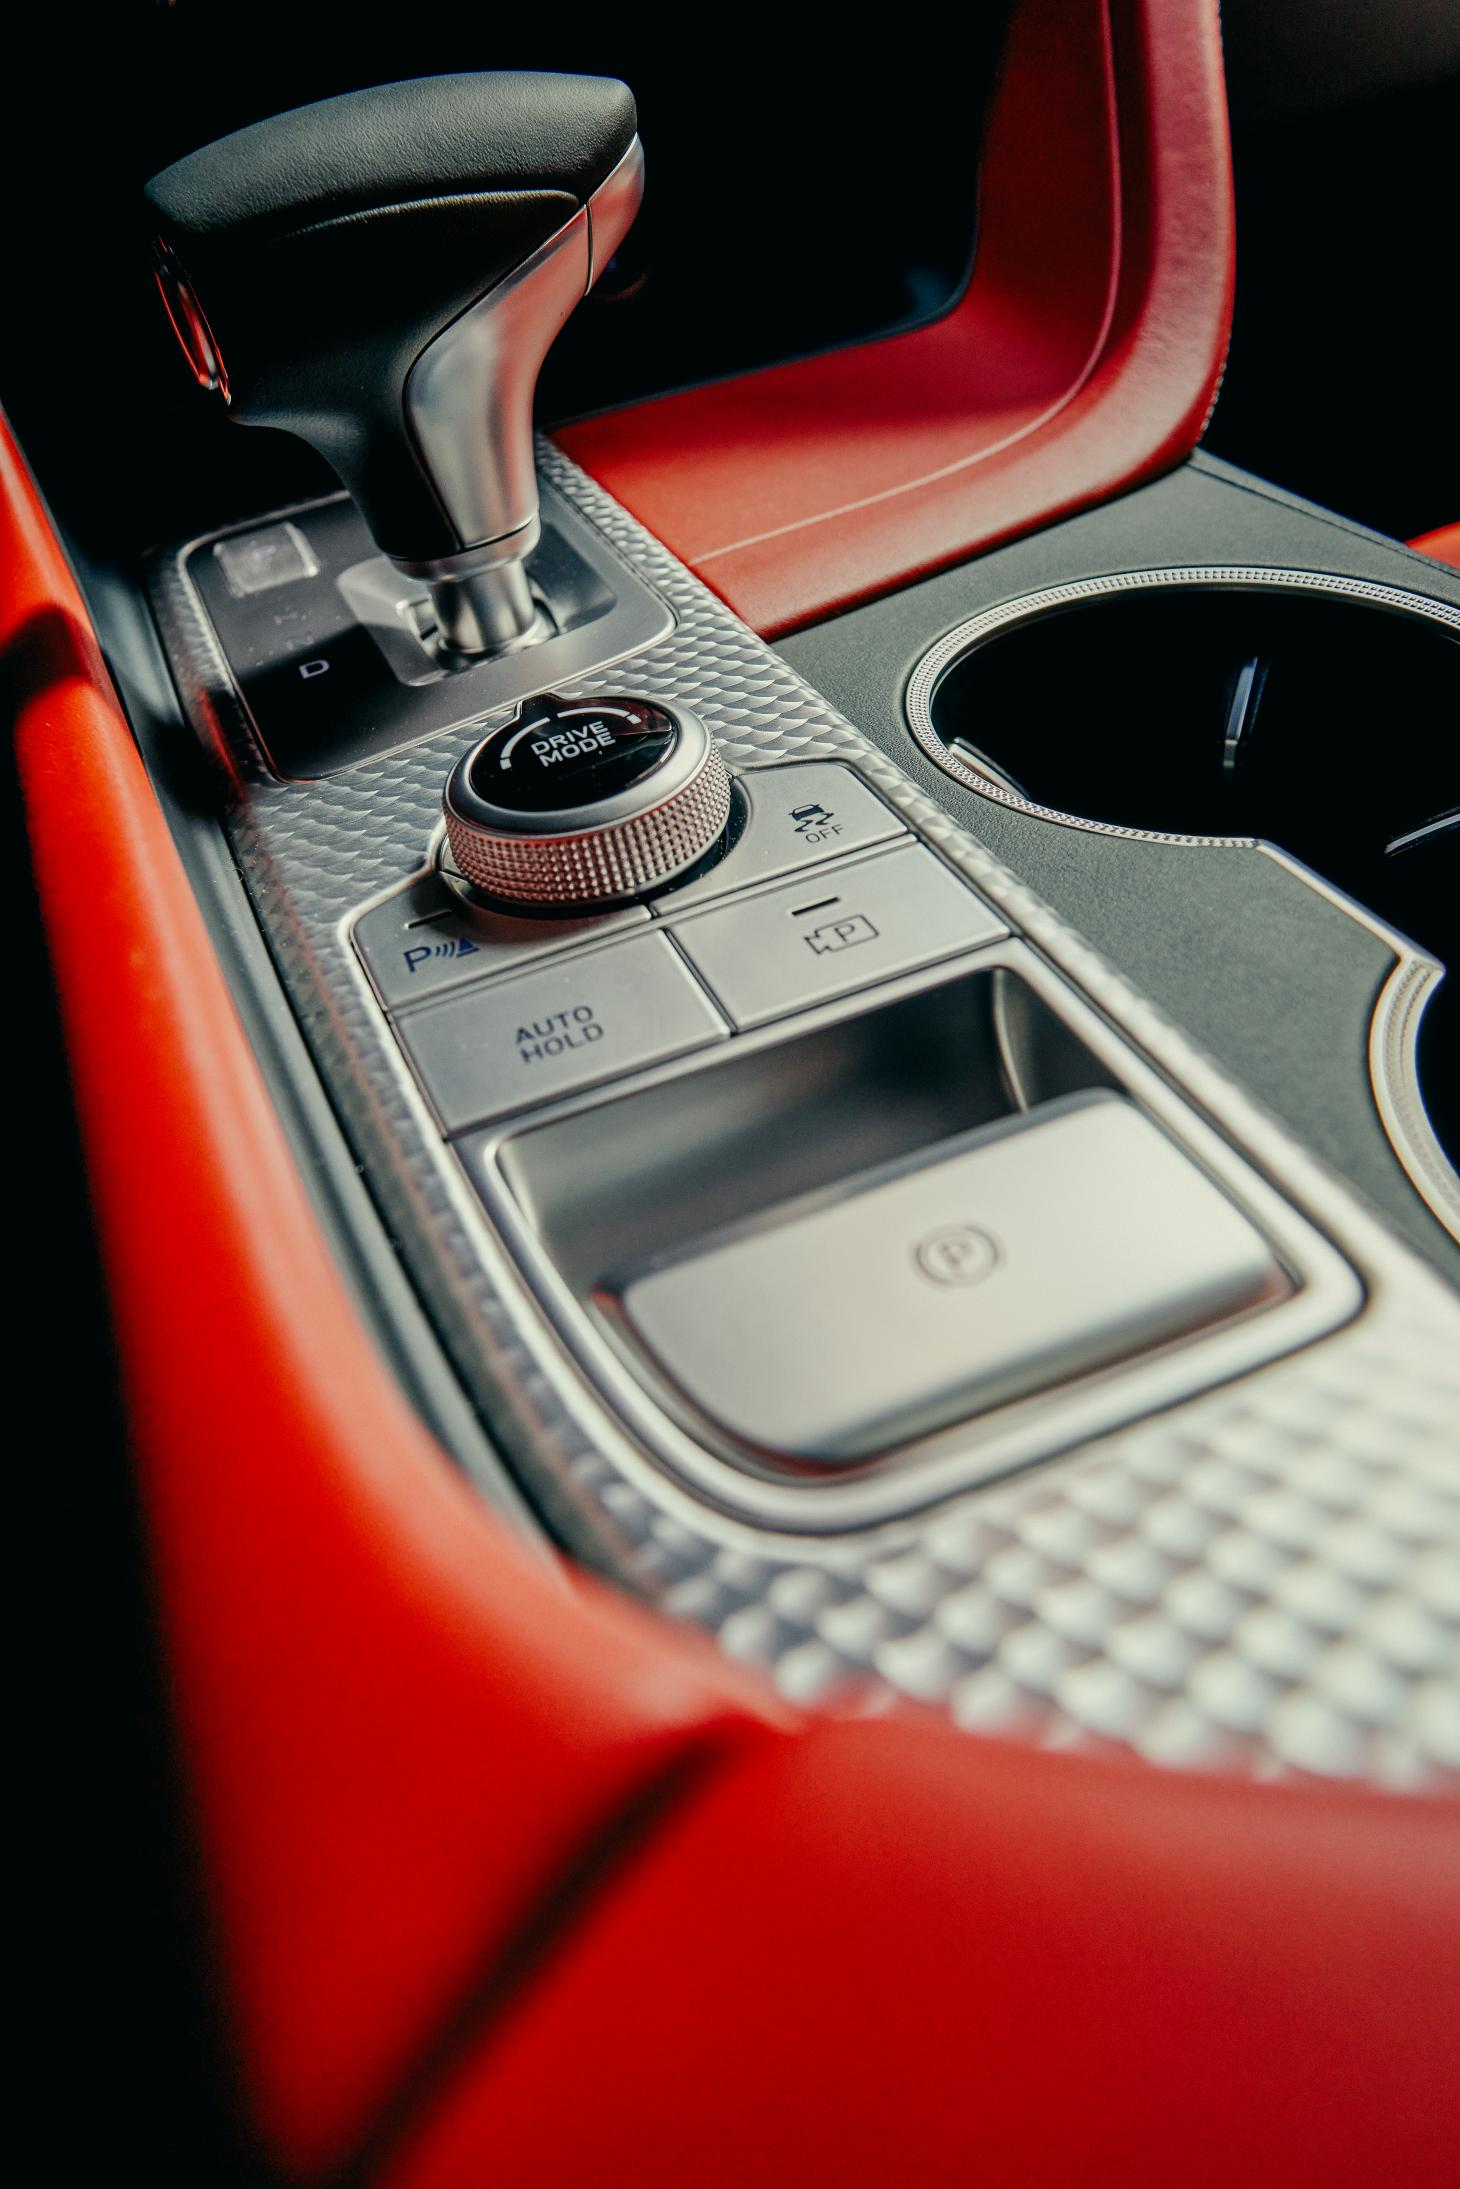 Genesis G70 car, interior detail image showing gear shift and controls